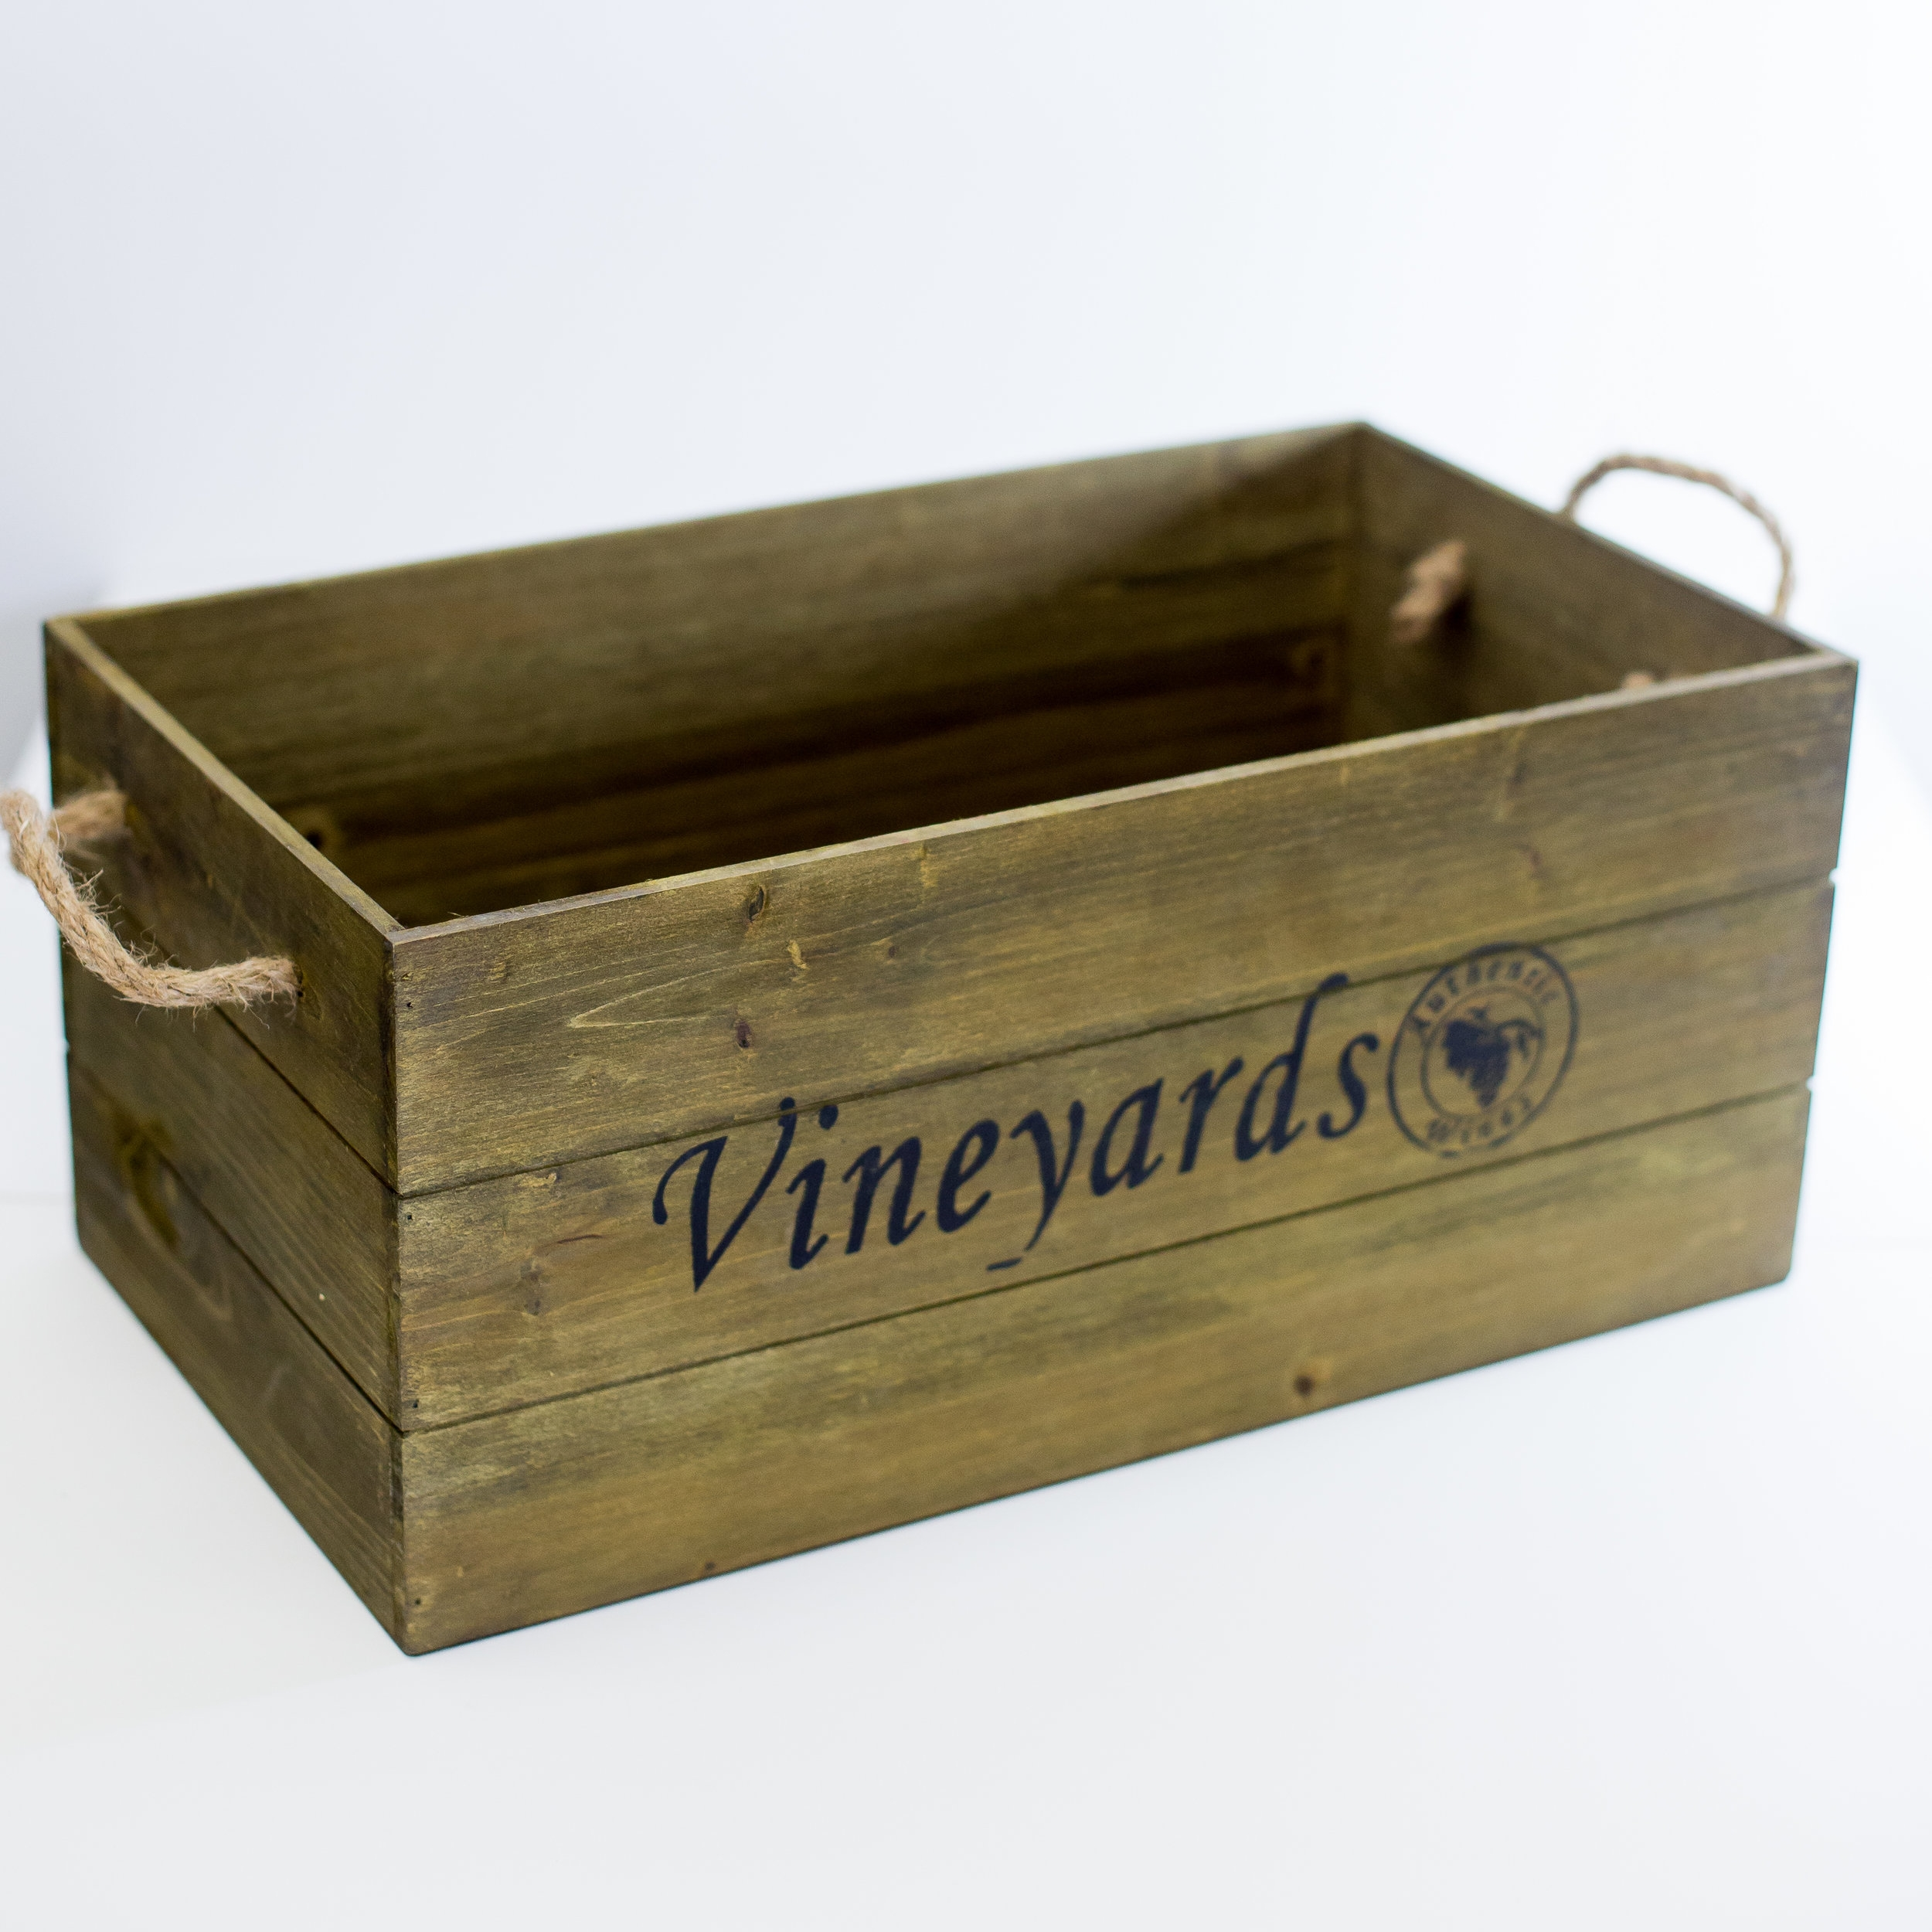 VINEYARDS WOODEN BOXES 'WINES OF THE WORLD' -